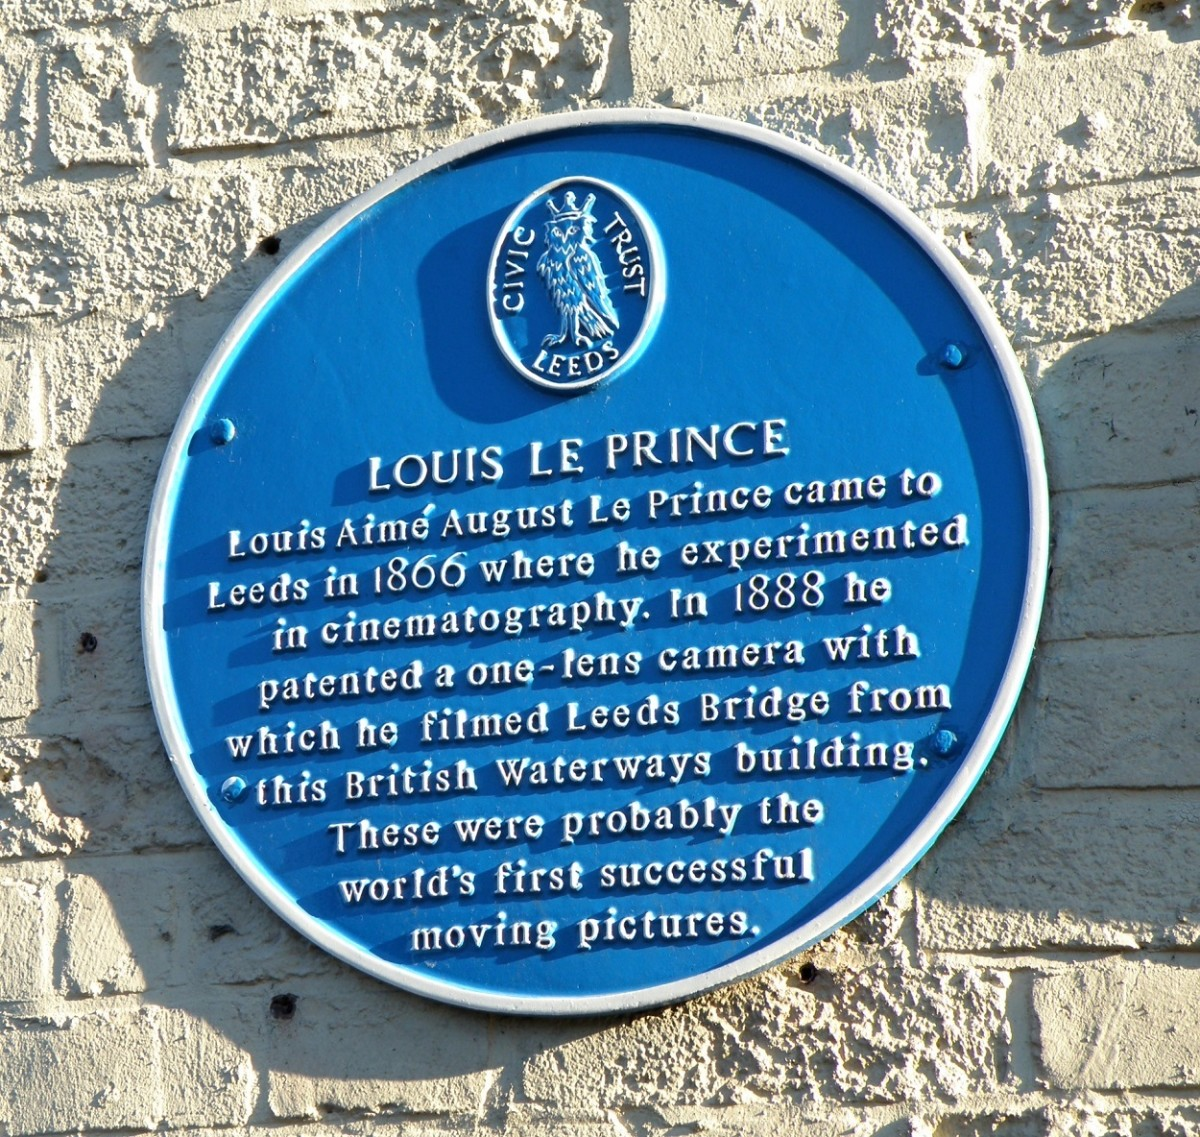 Plaque dedicated to Louis Le Prince. Located in Leeds, England